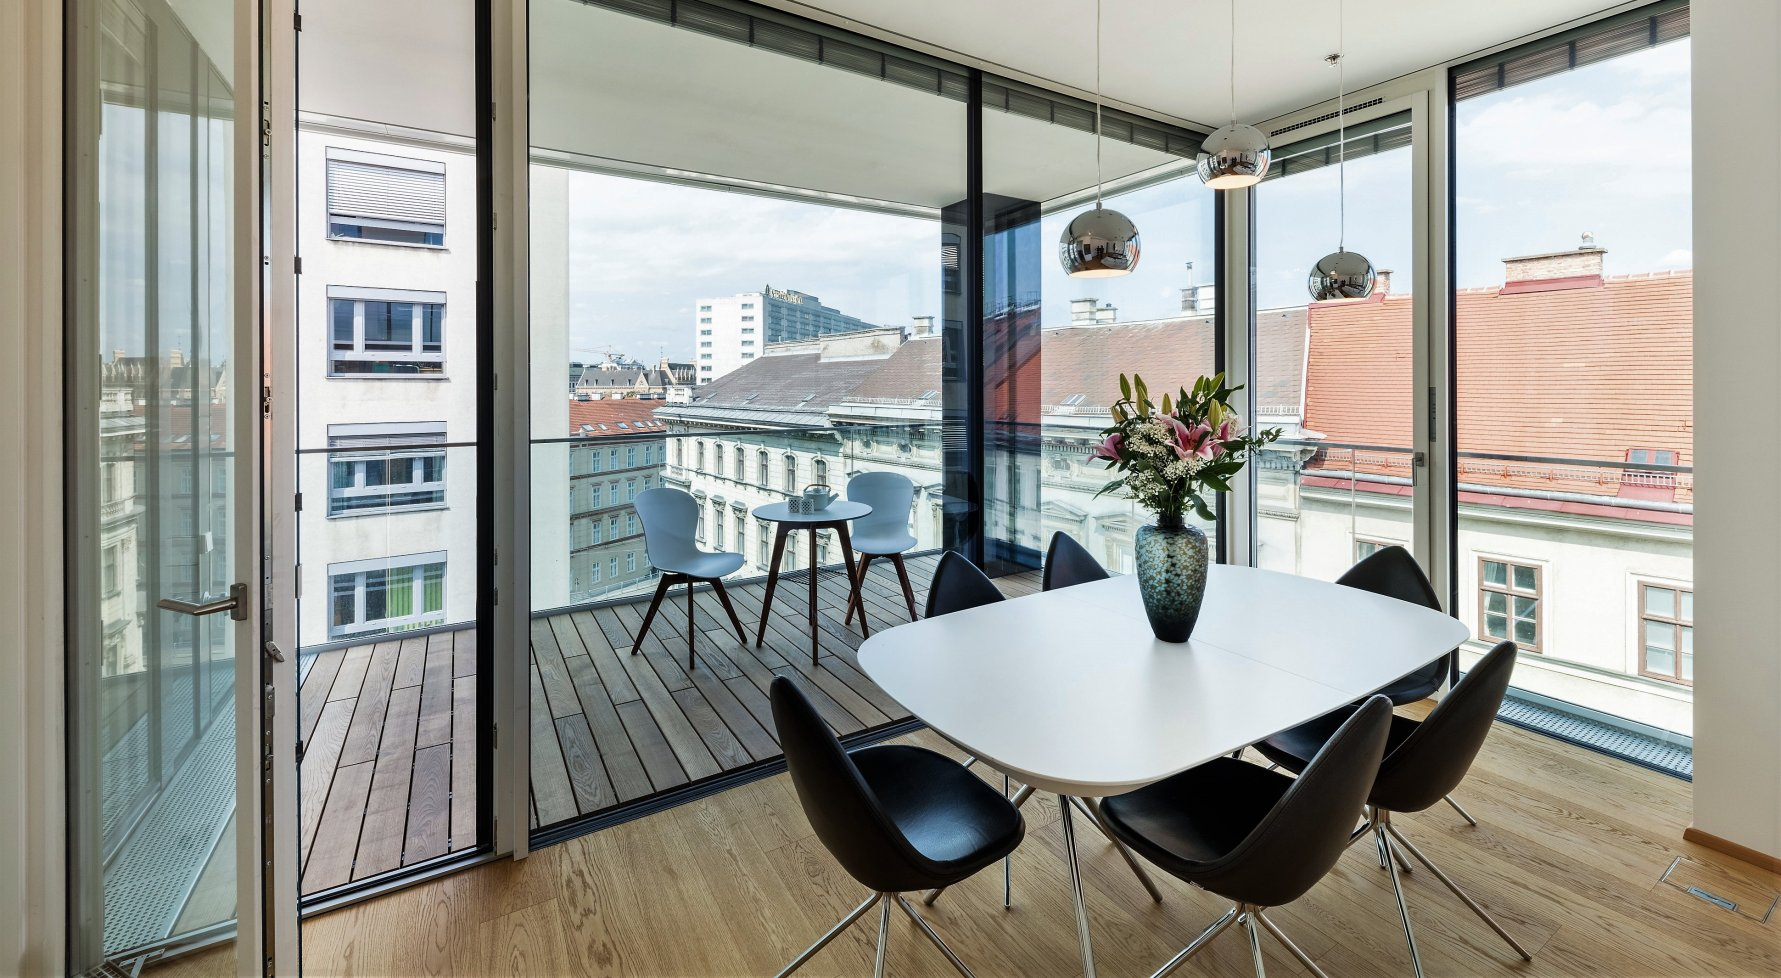 Property in 1030 Wien, 3. Bezirk: Timeless Living: City apartment with all the refinements - picture 1